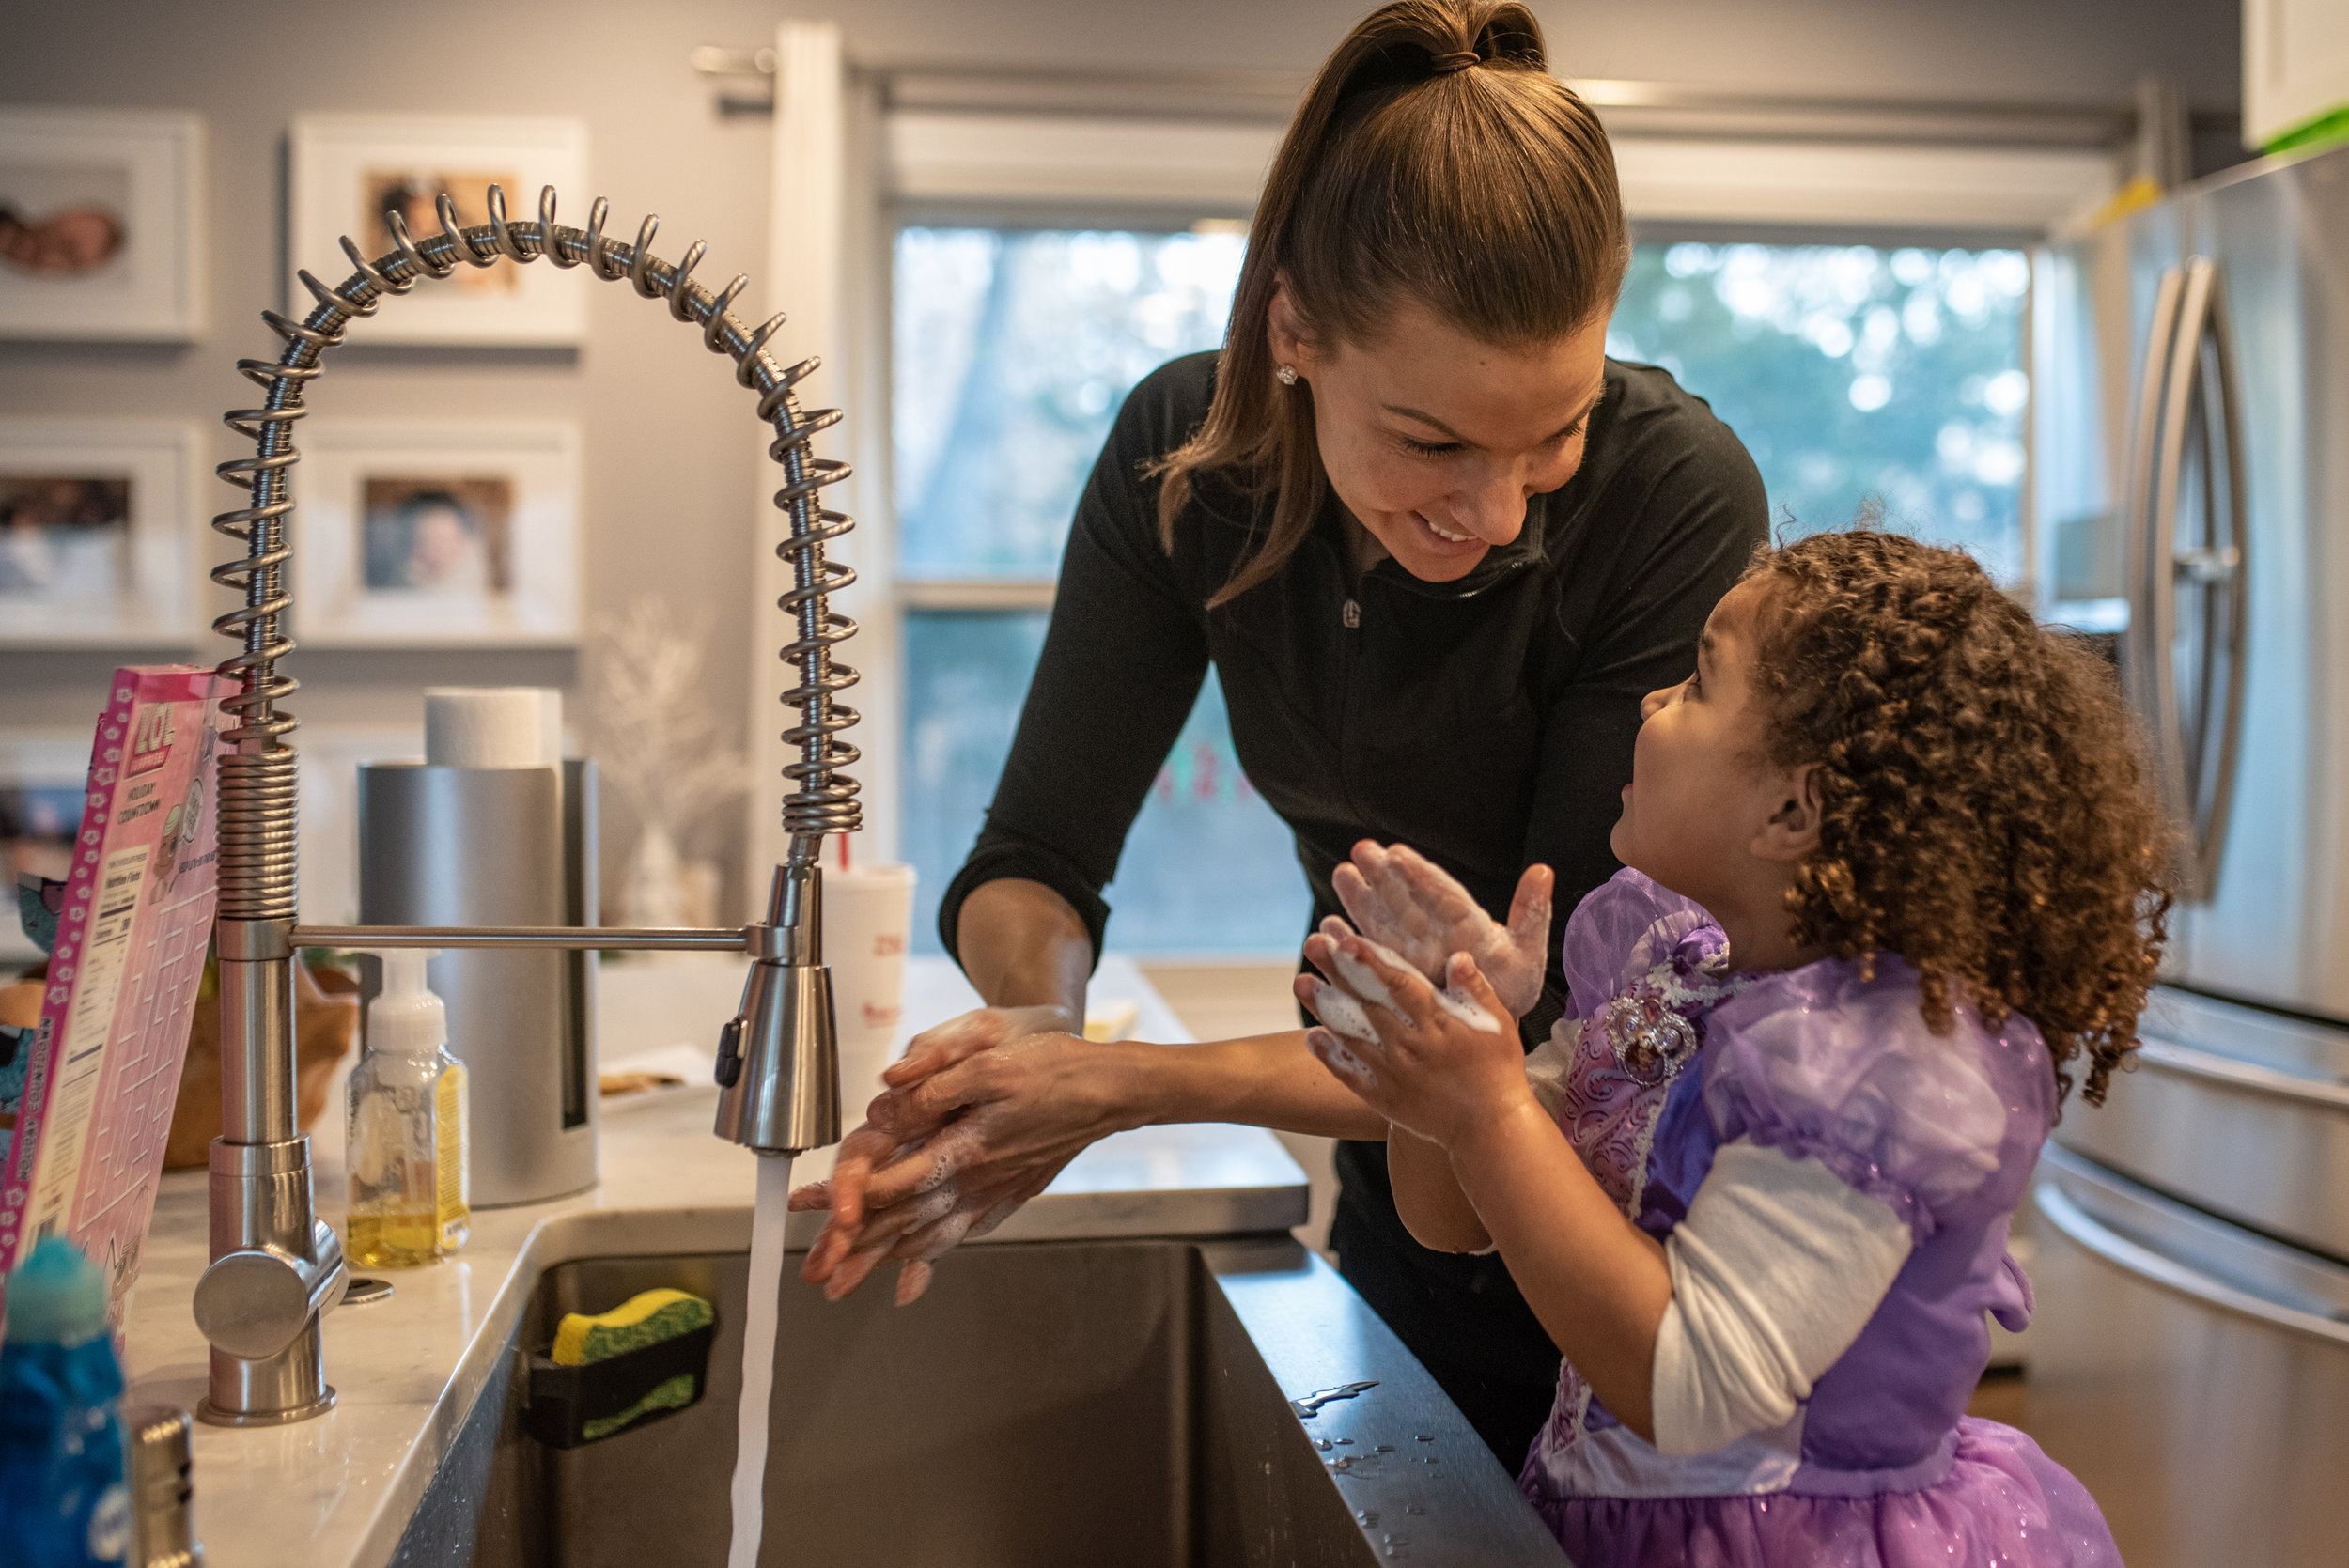 Mom and daughter washing hands in sink and looking at each other